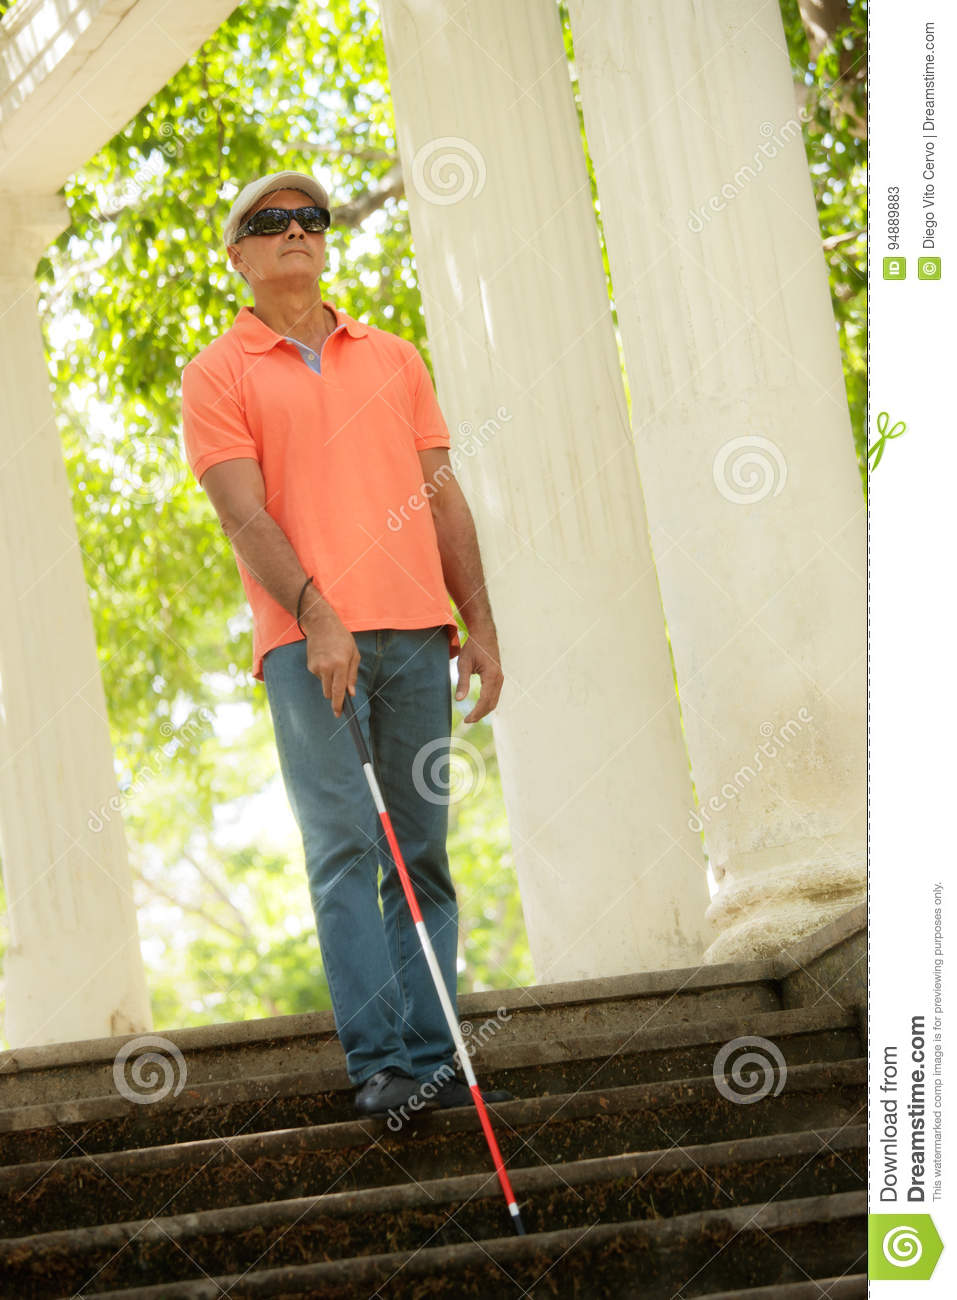 personal life of a blind person Famous people with visual impairments historically famous people with blindness or visual impairments blindness is the condition of lacking visual perception due to physiological and/or neurological factors.